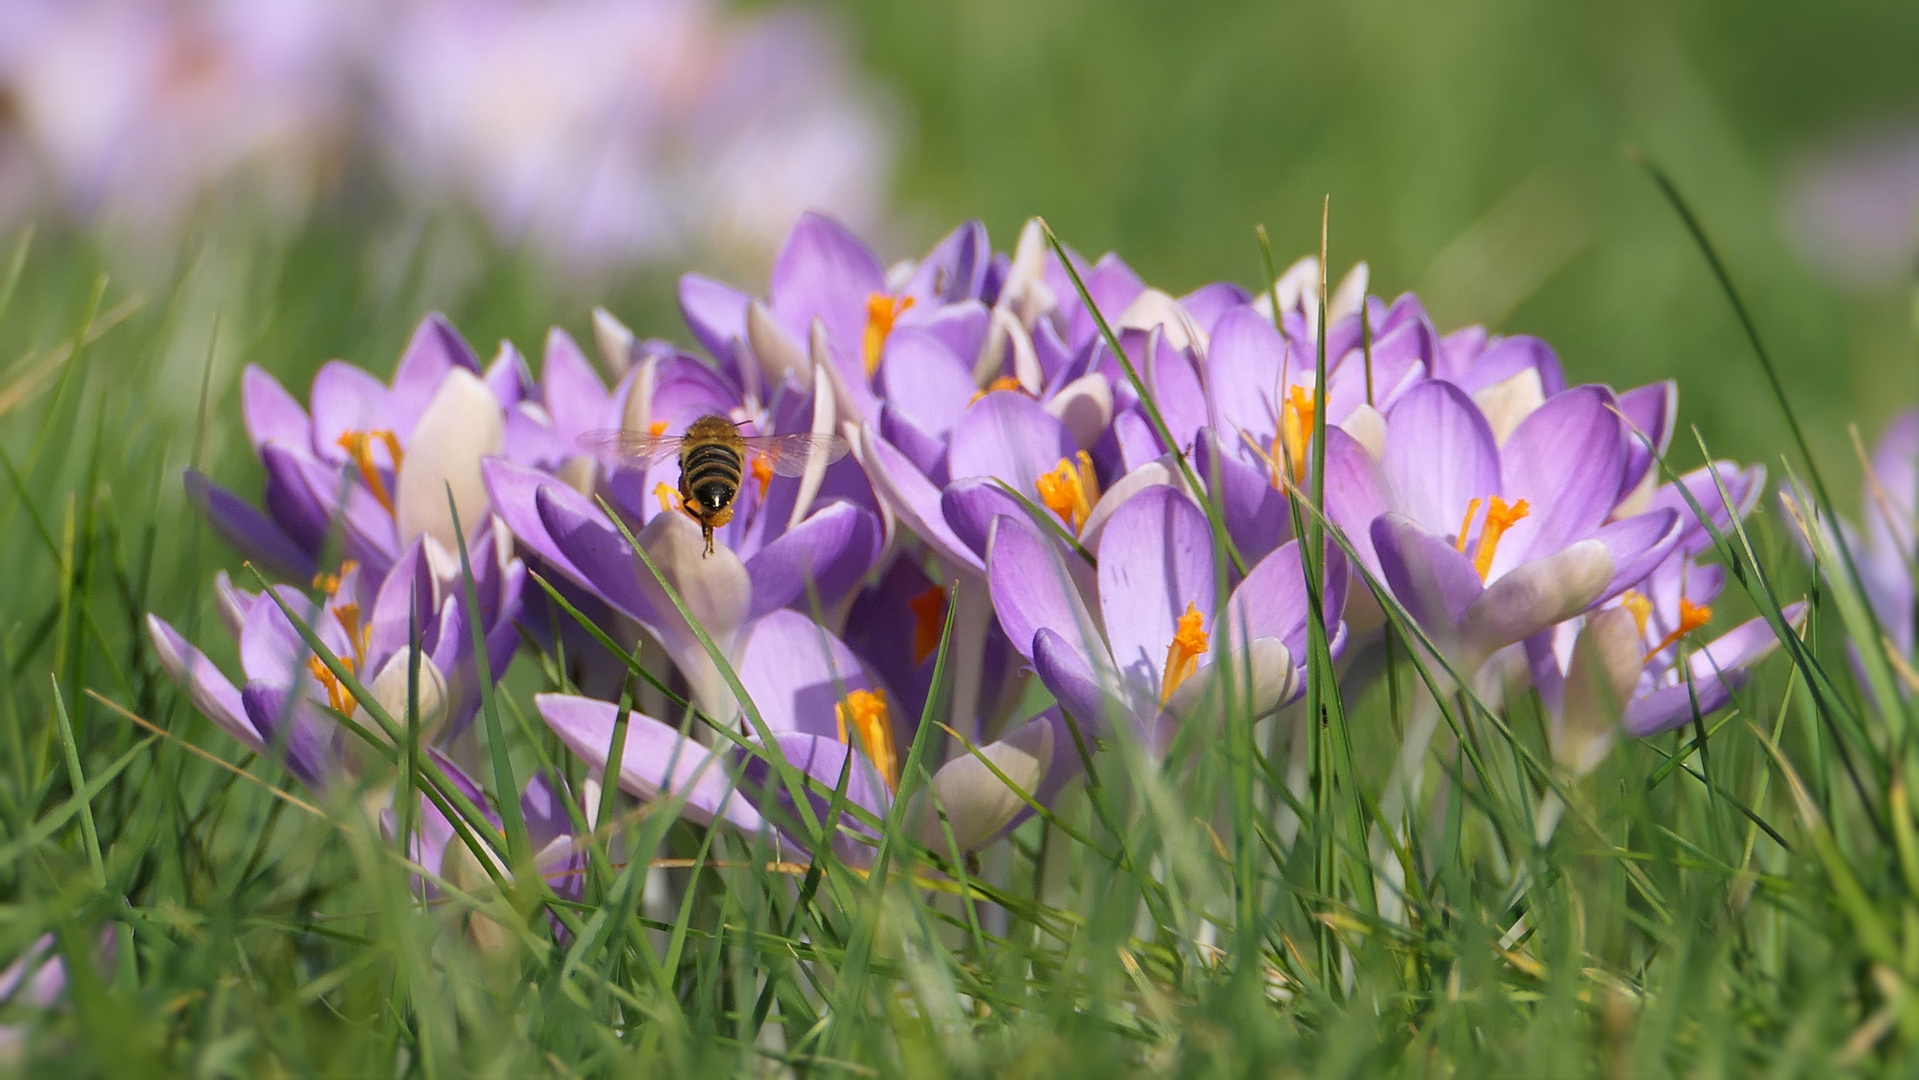 ... crocuses at the end of February